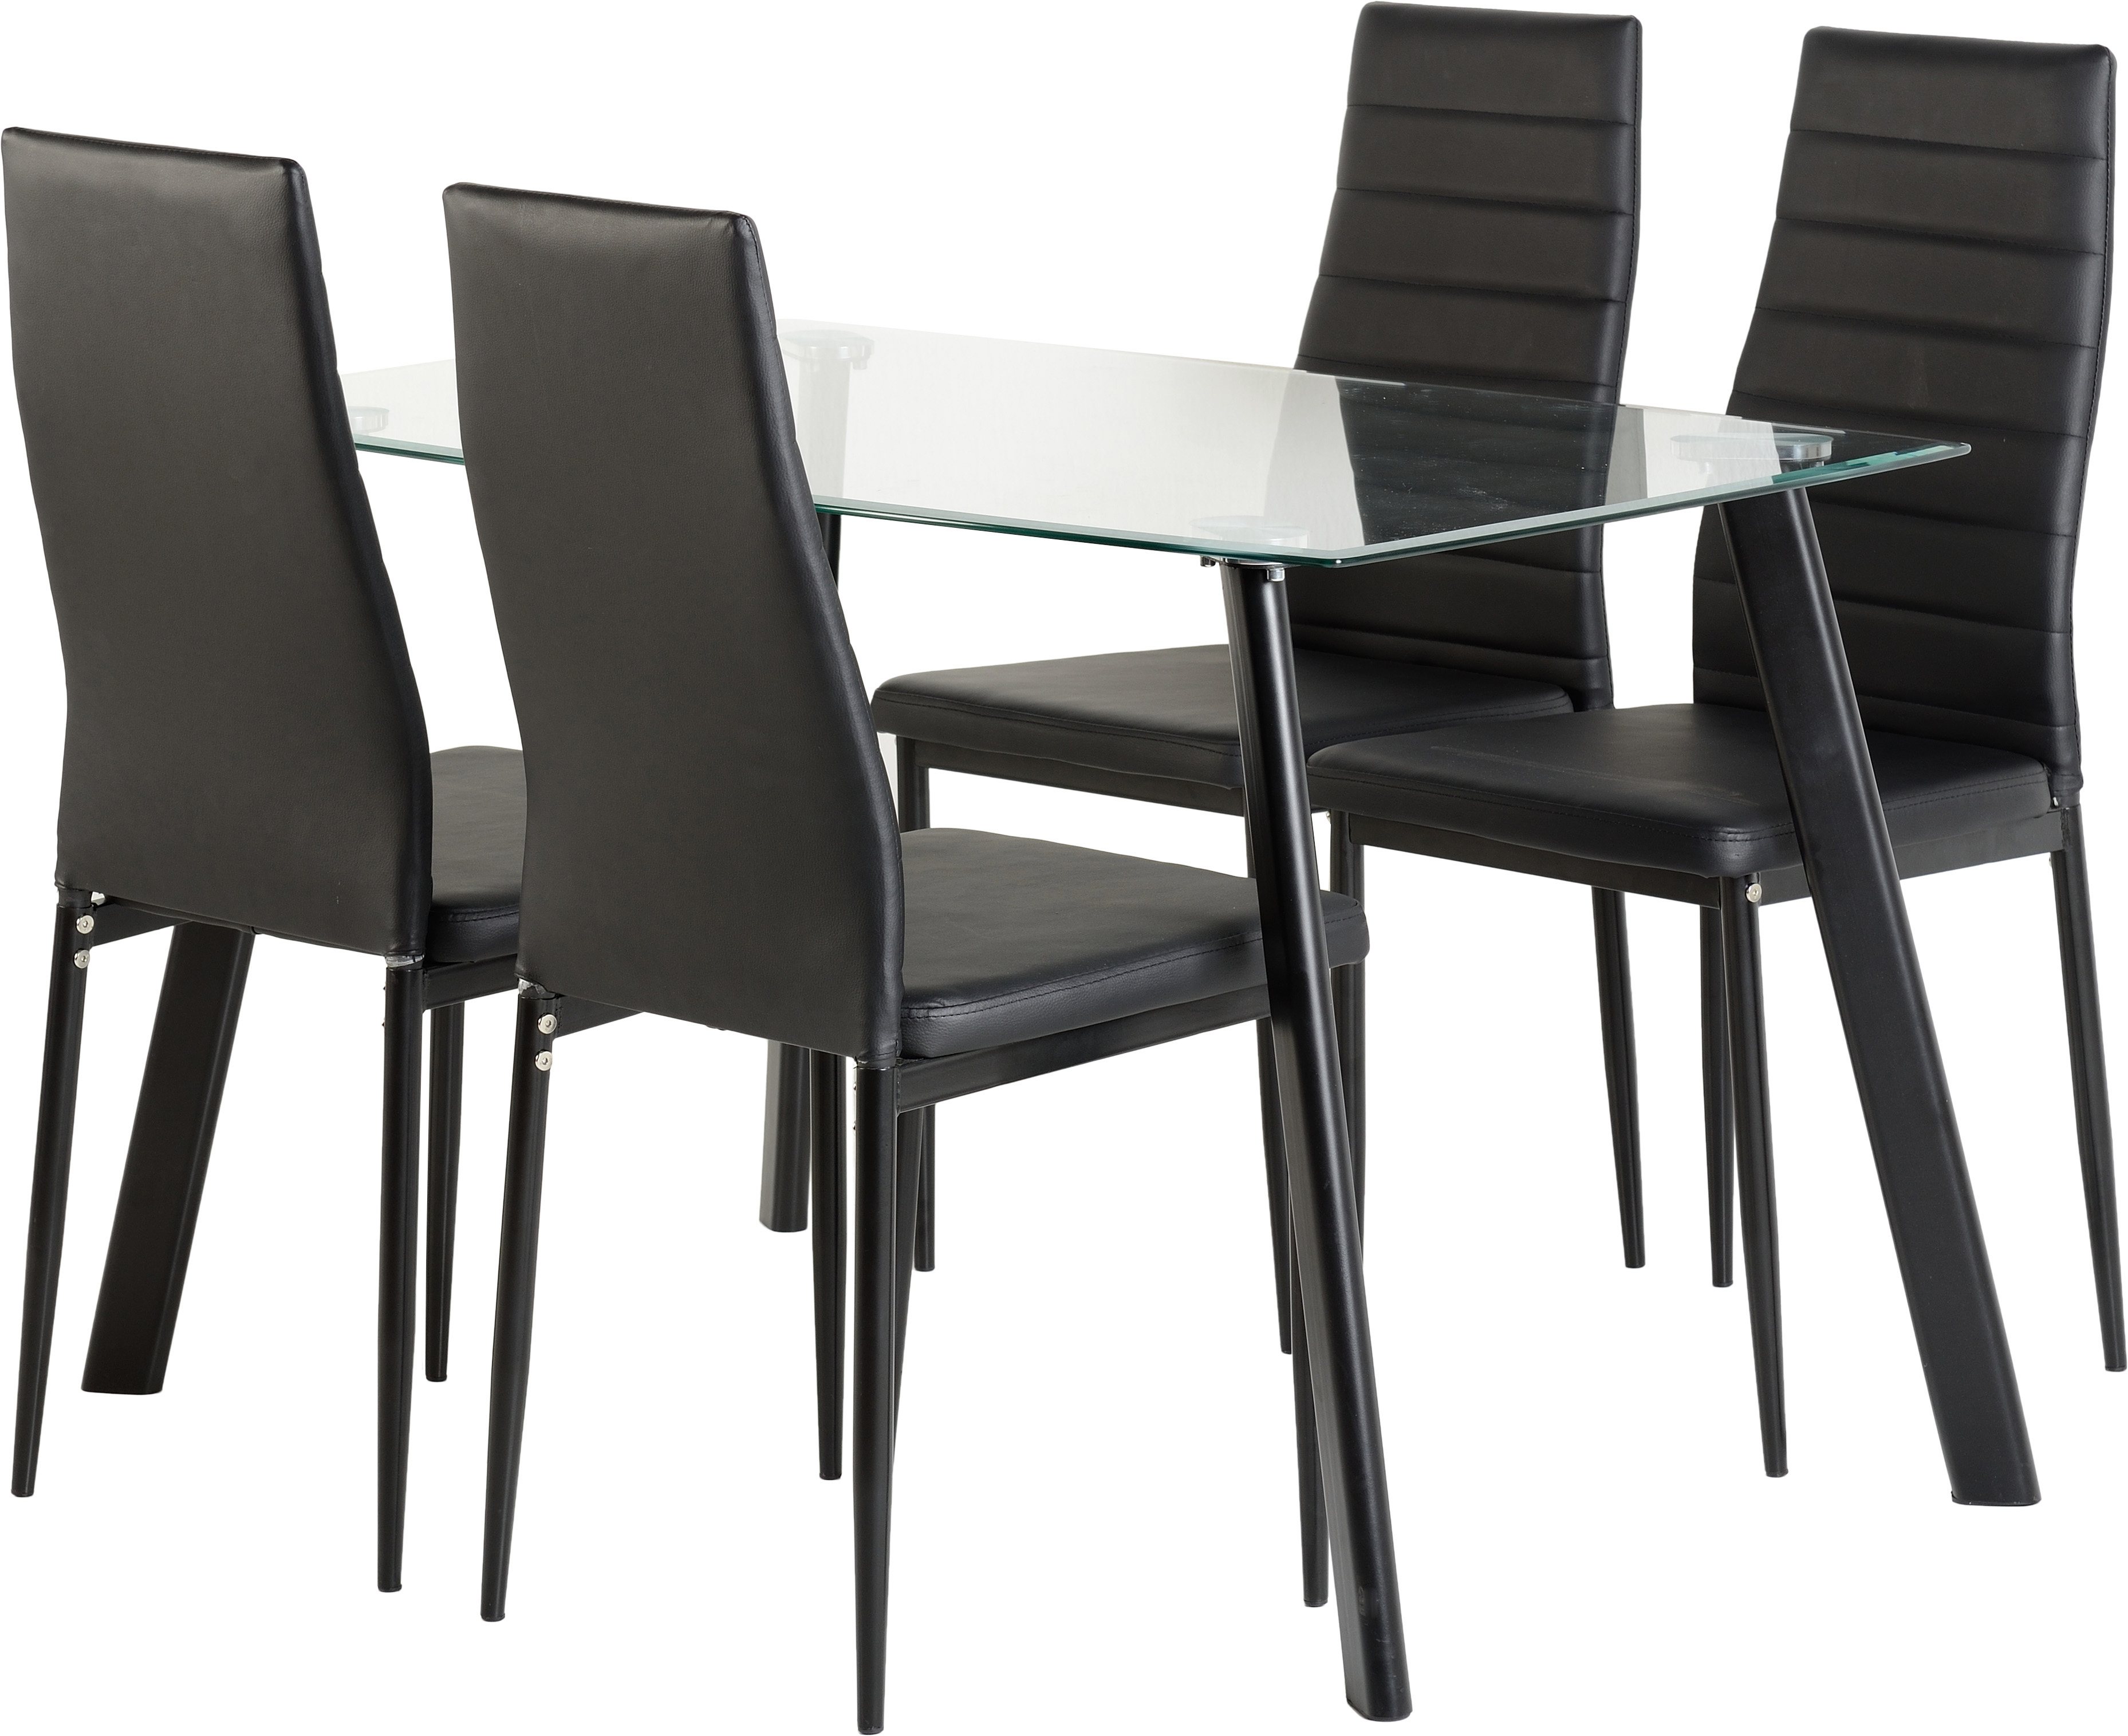 Image of Abbey 4 Seater Dining Set in Clear Glass & Black